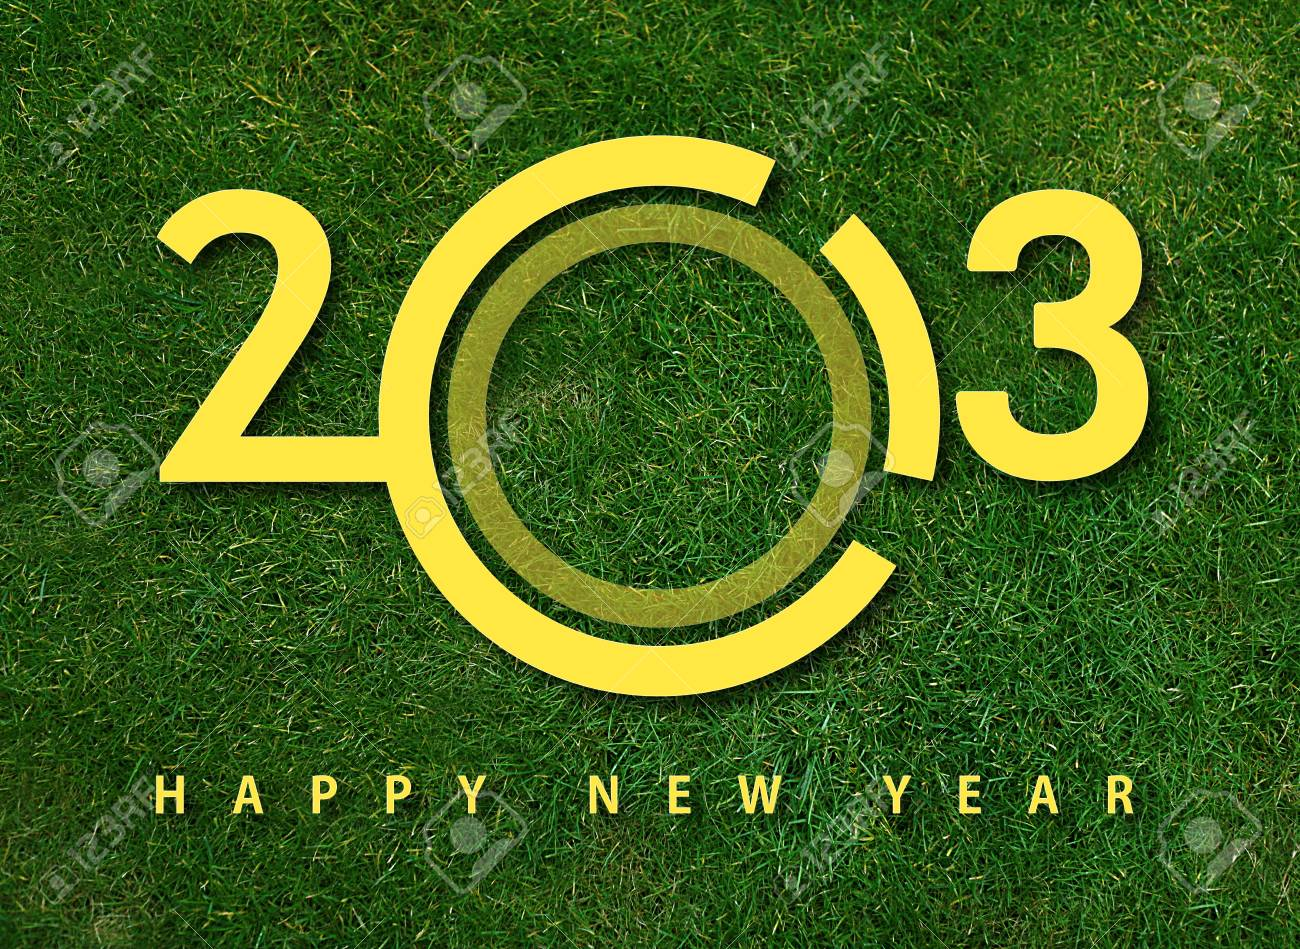 Happy new year 2013, new year conceptual image. Stock Photo - 15551324